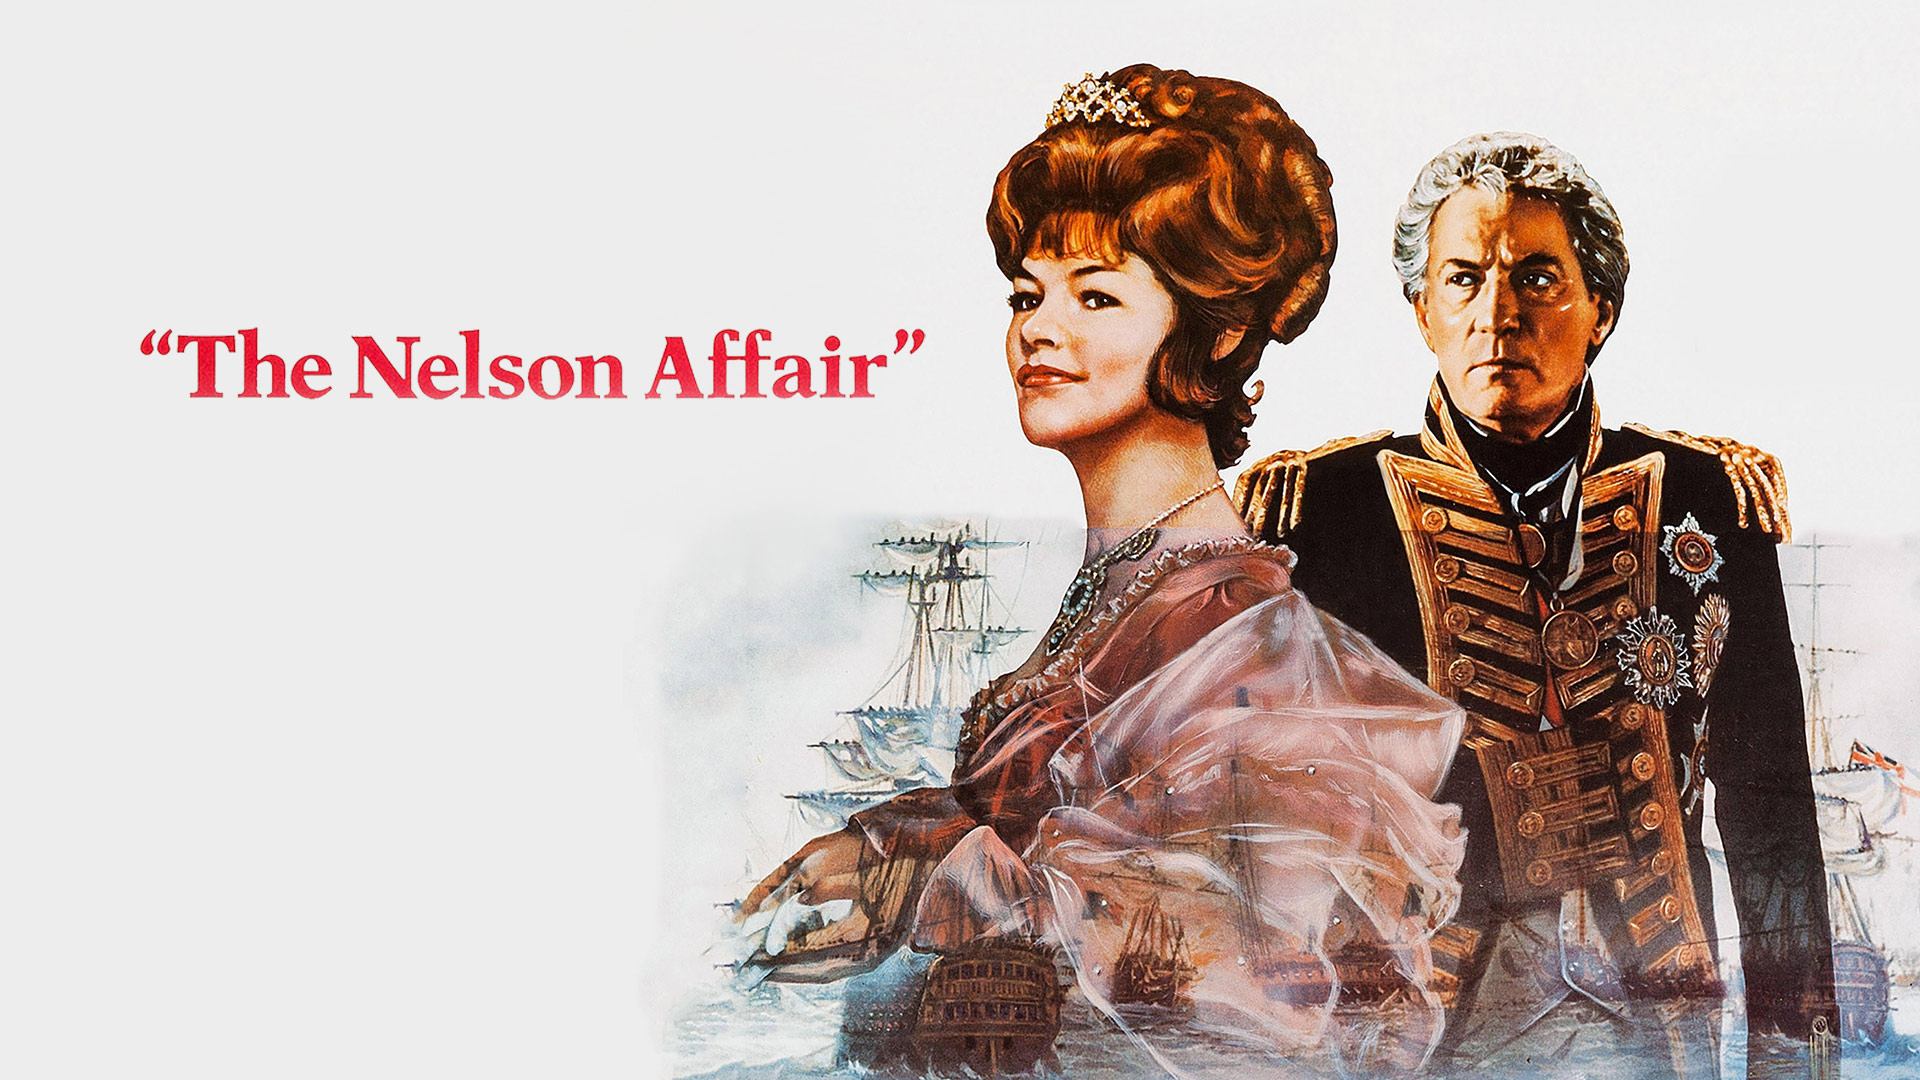 The Nelson Affair